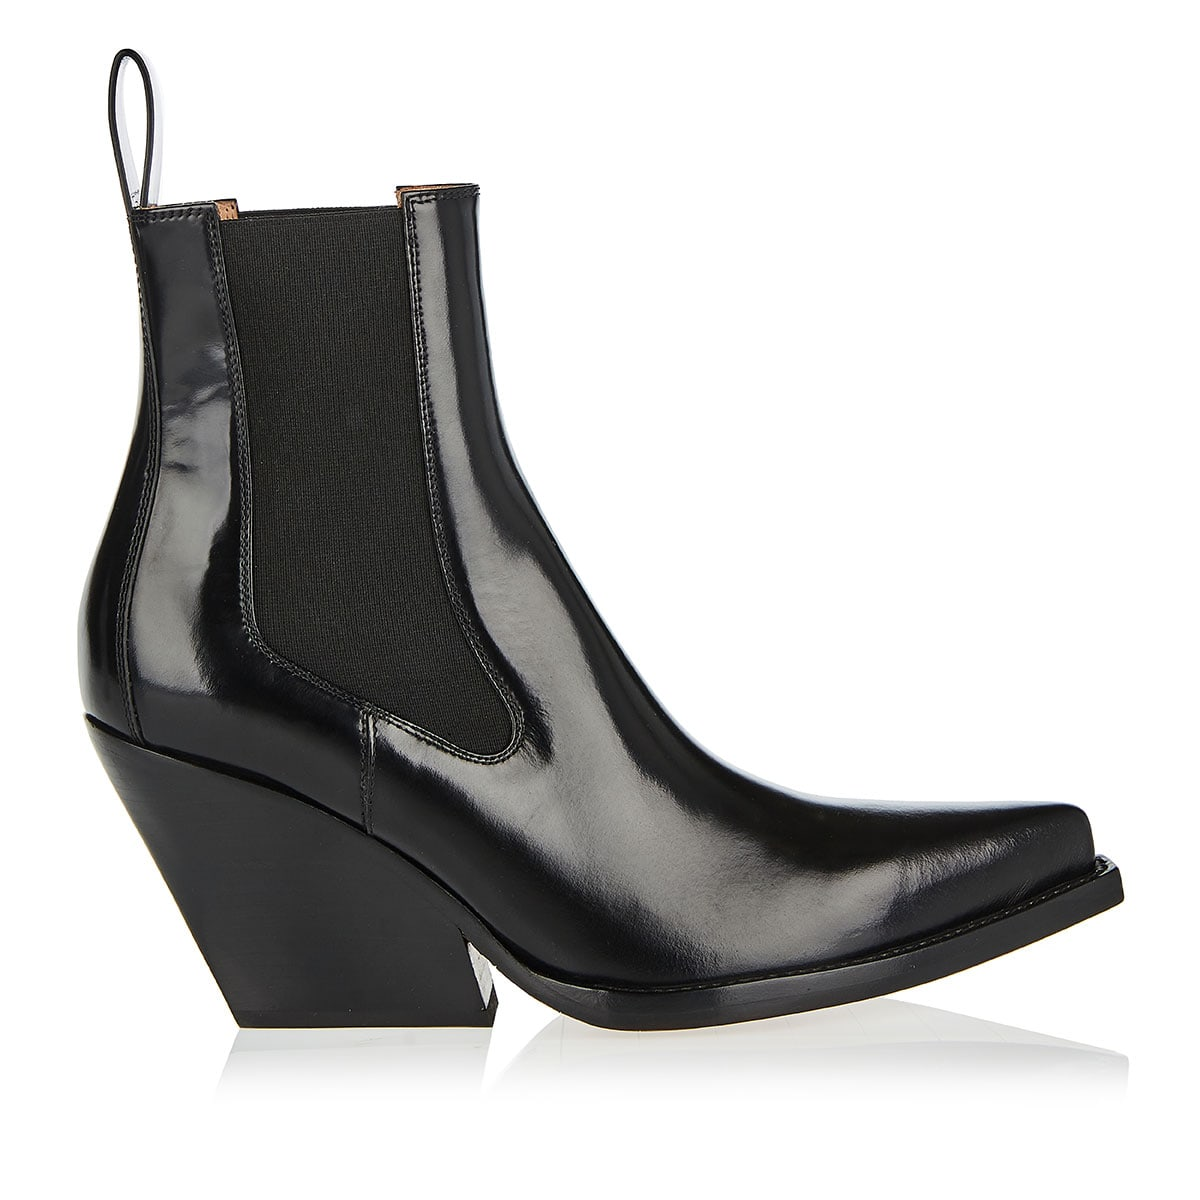 BV Lean ankle boots